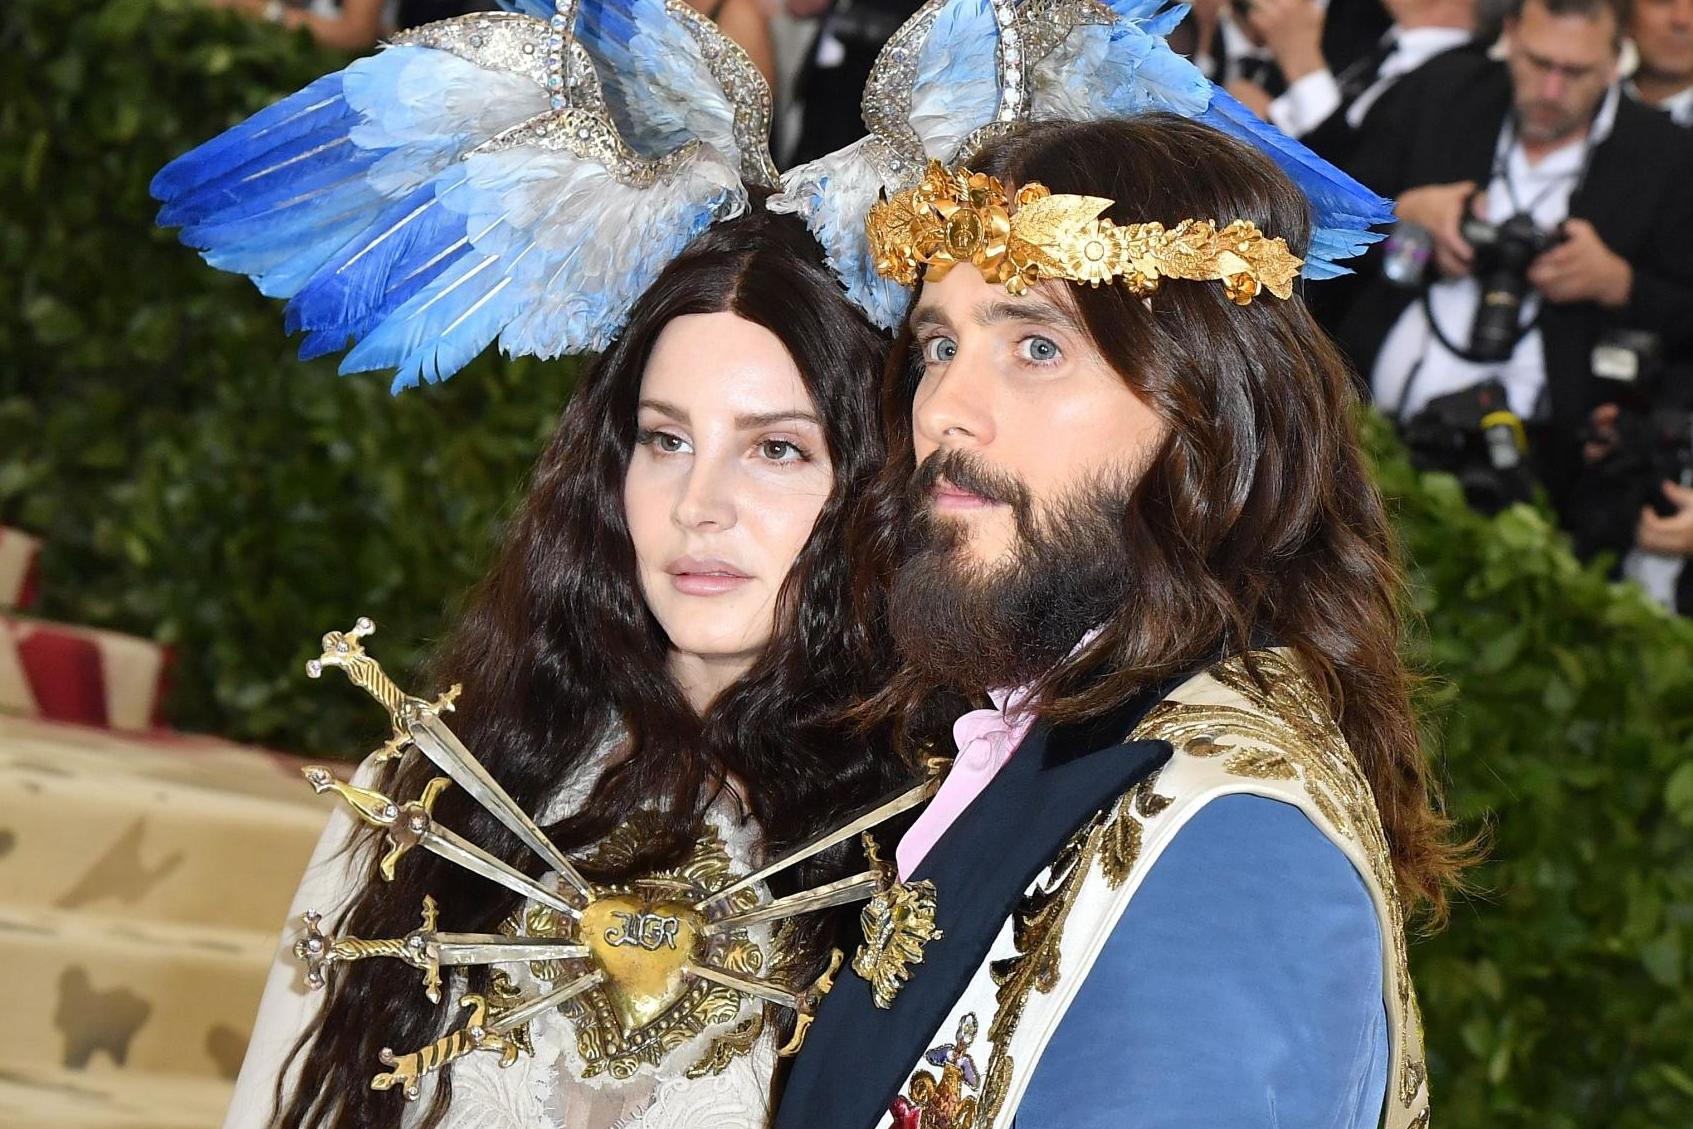 Met Gala 2019: What is the theme, when is it and who is